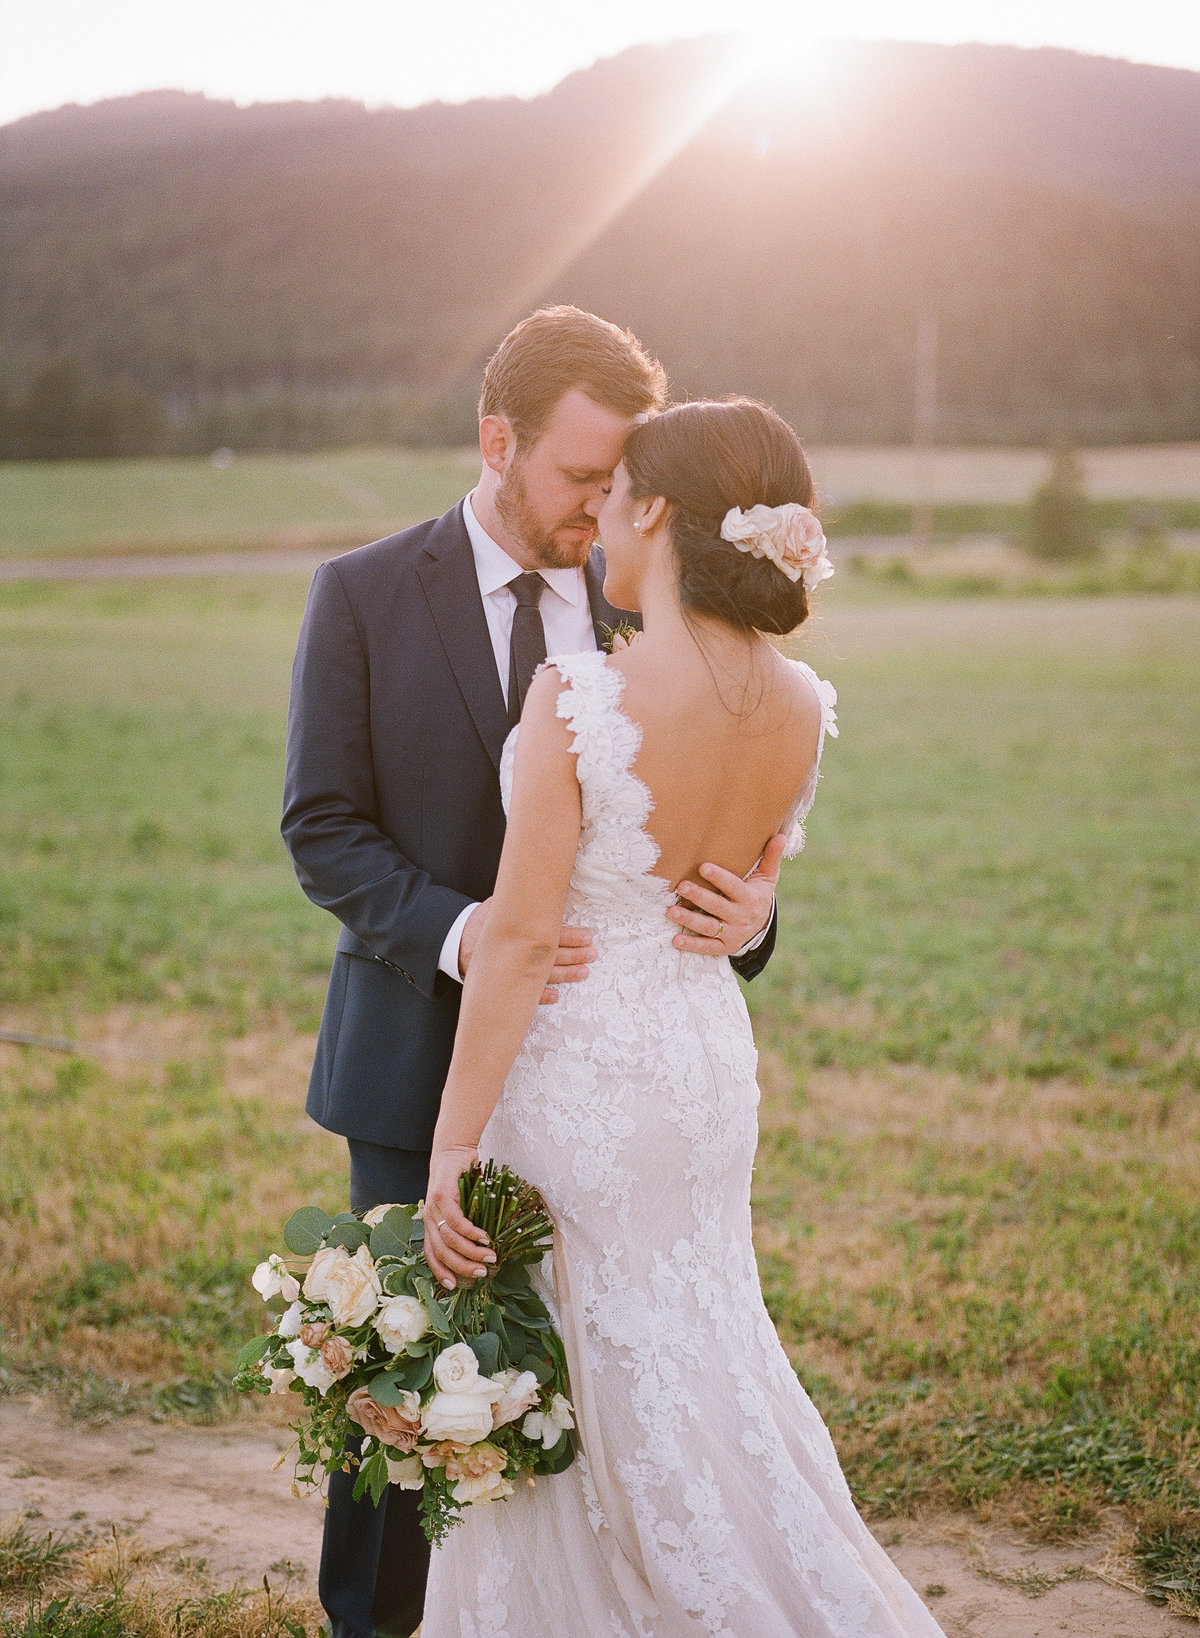 Melissa+Morgans_Wedding_BrideandGroom-10